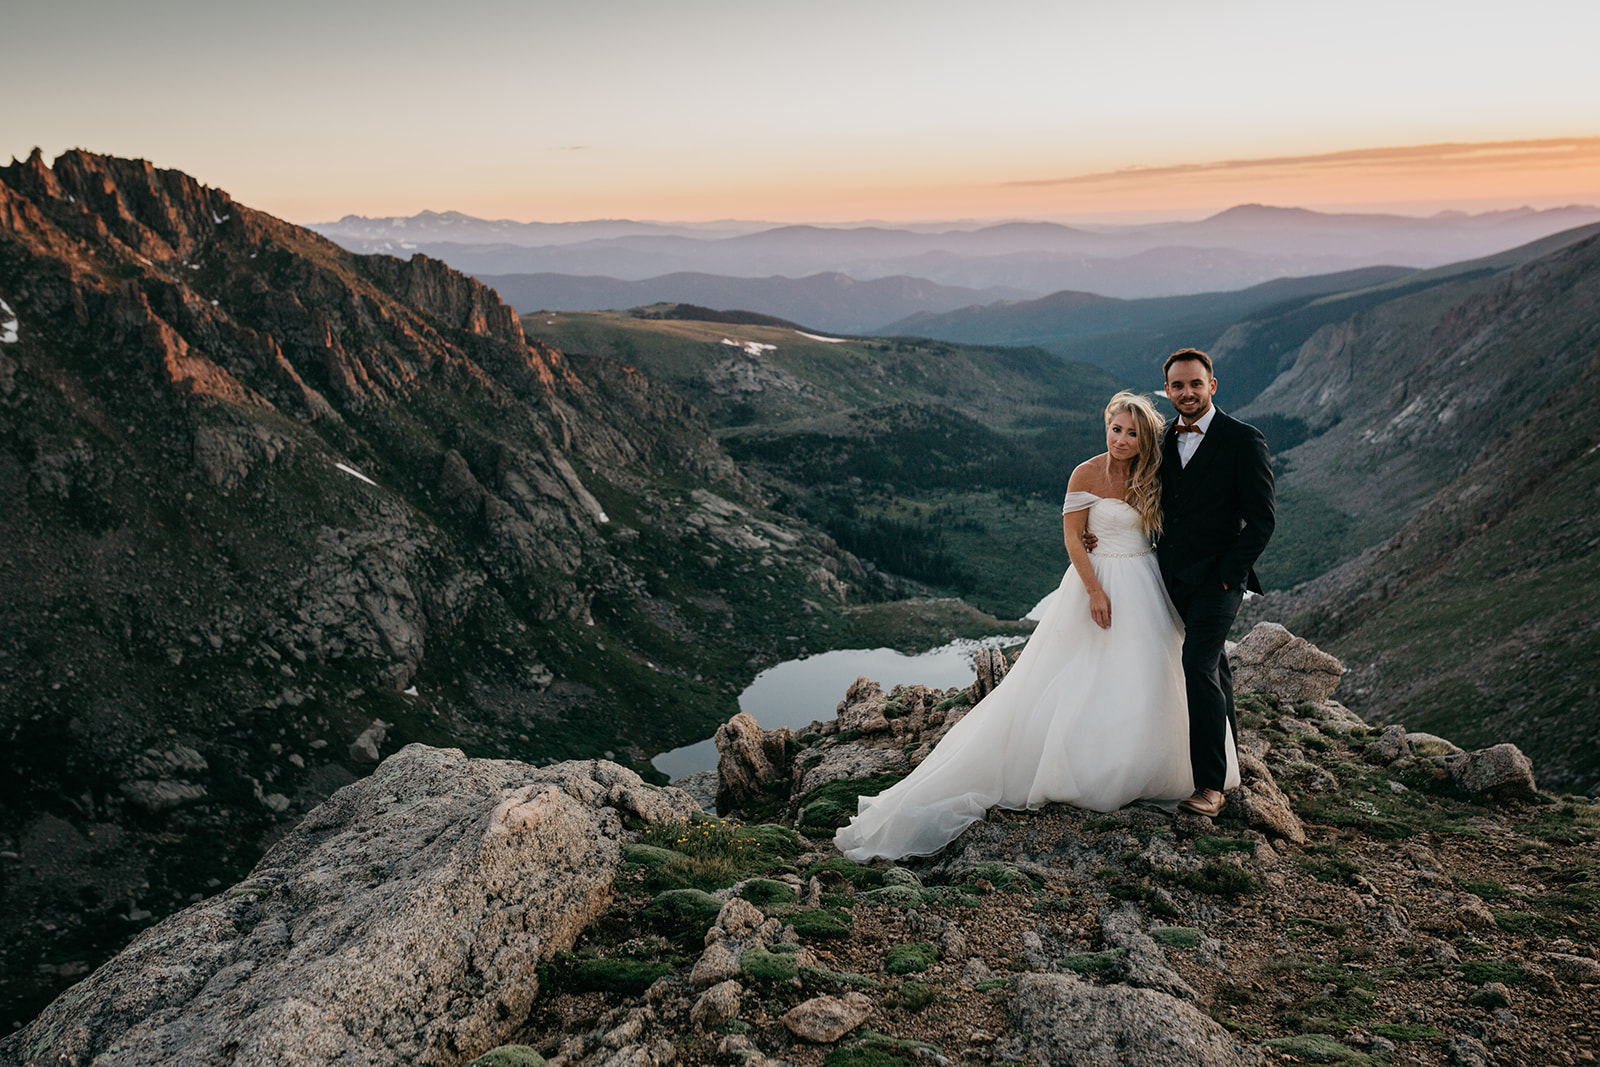 Couple enjoying the sunset during their mountain wedding